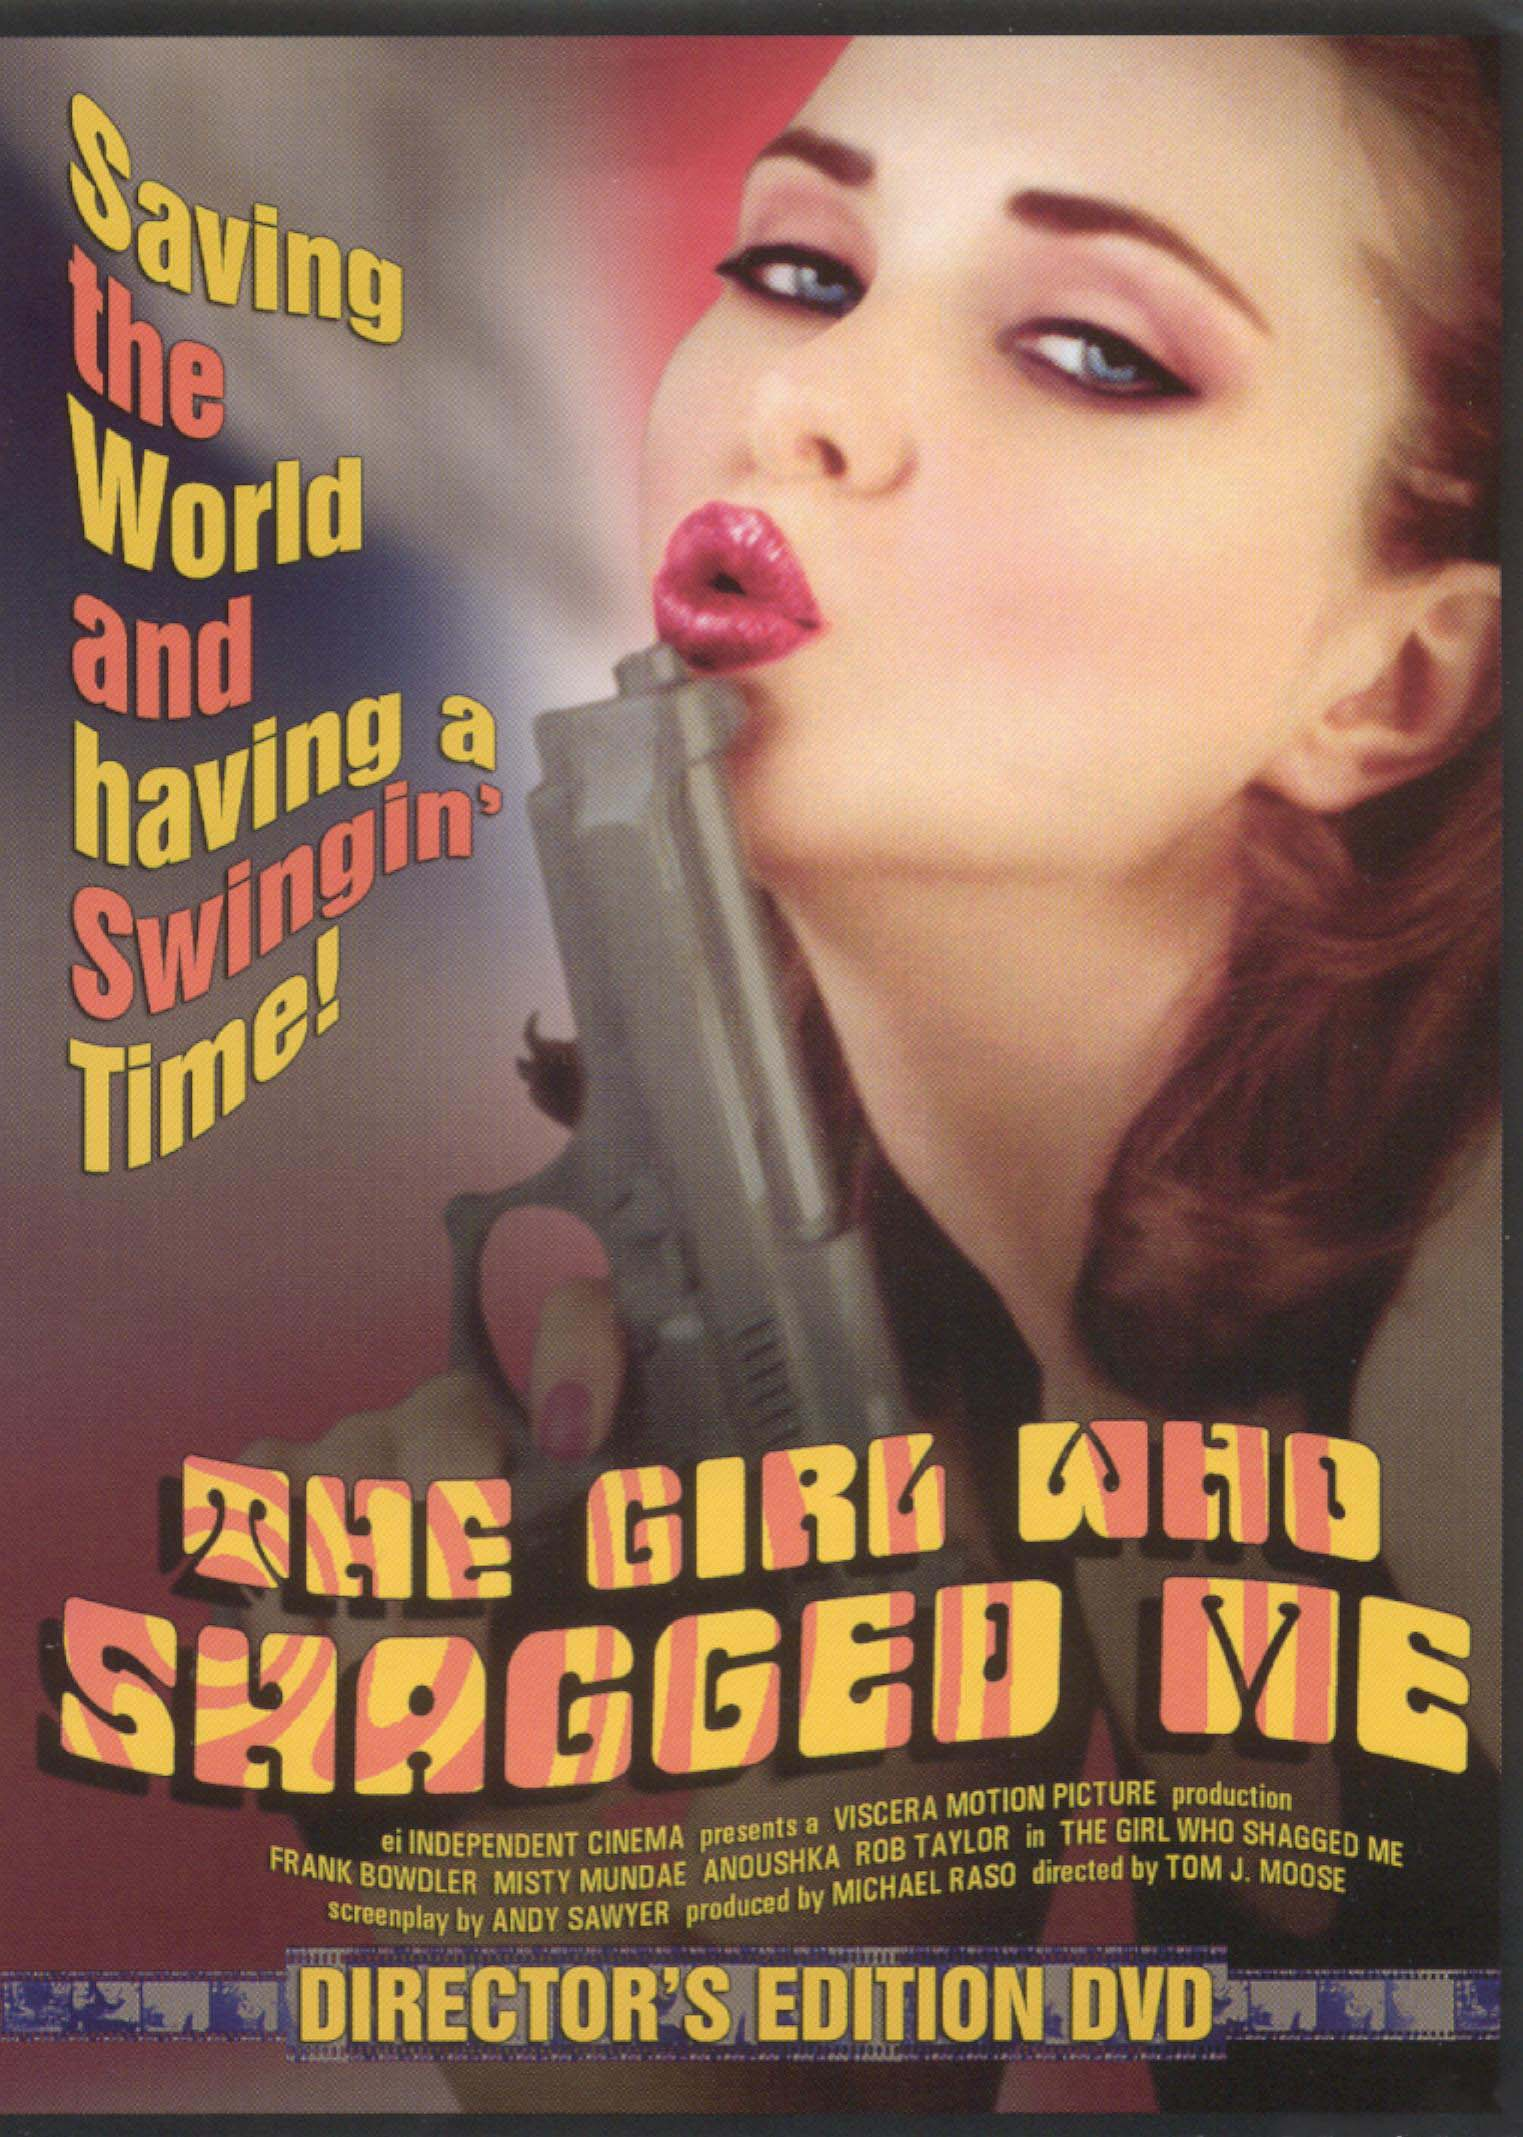 The Girl Who Shagged Me